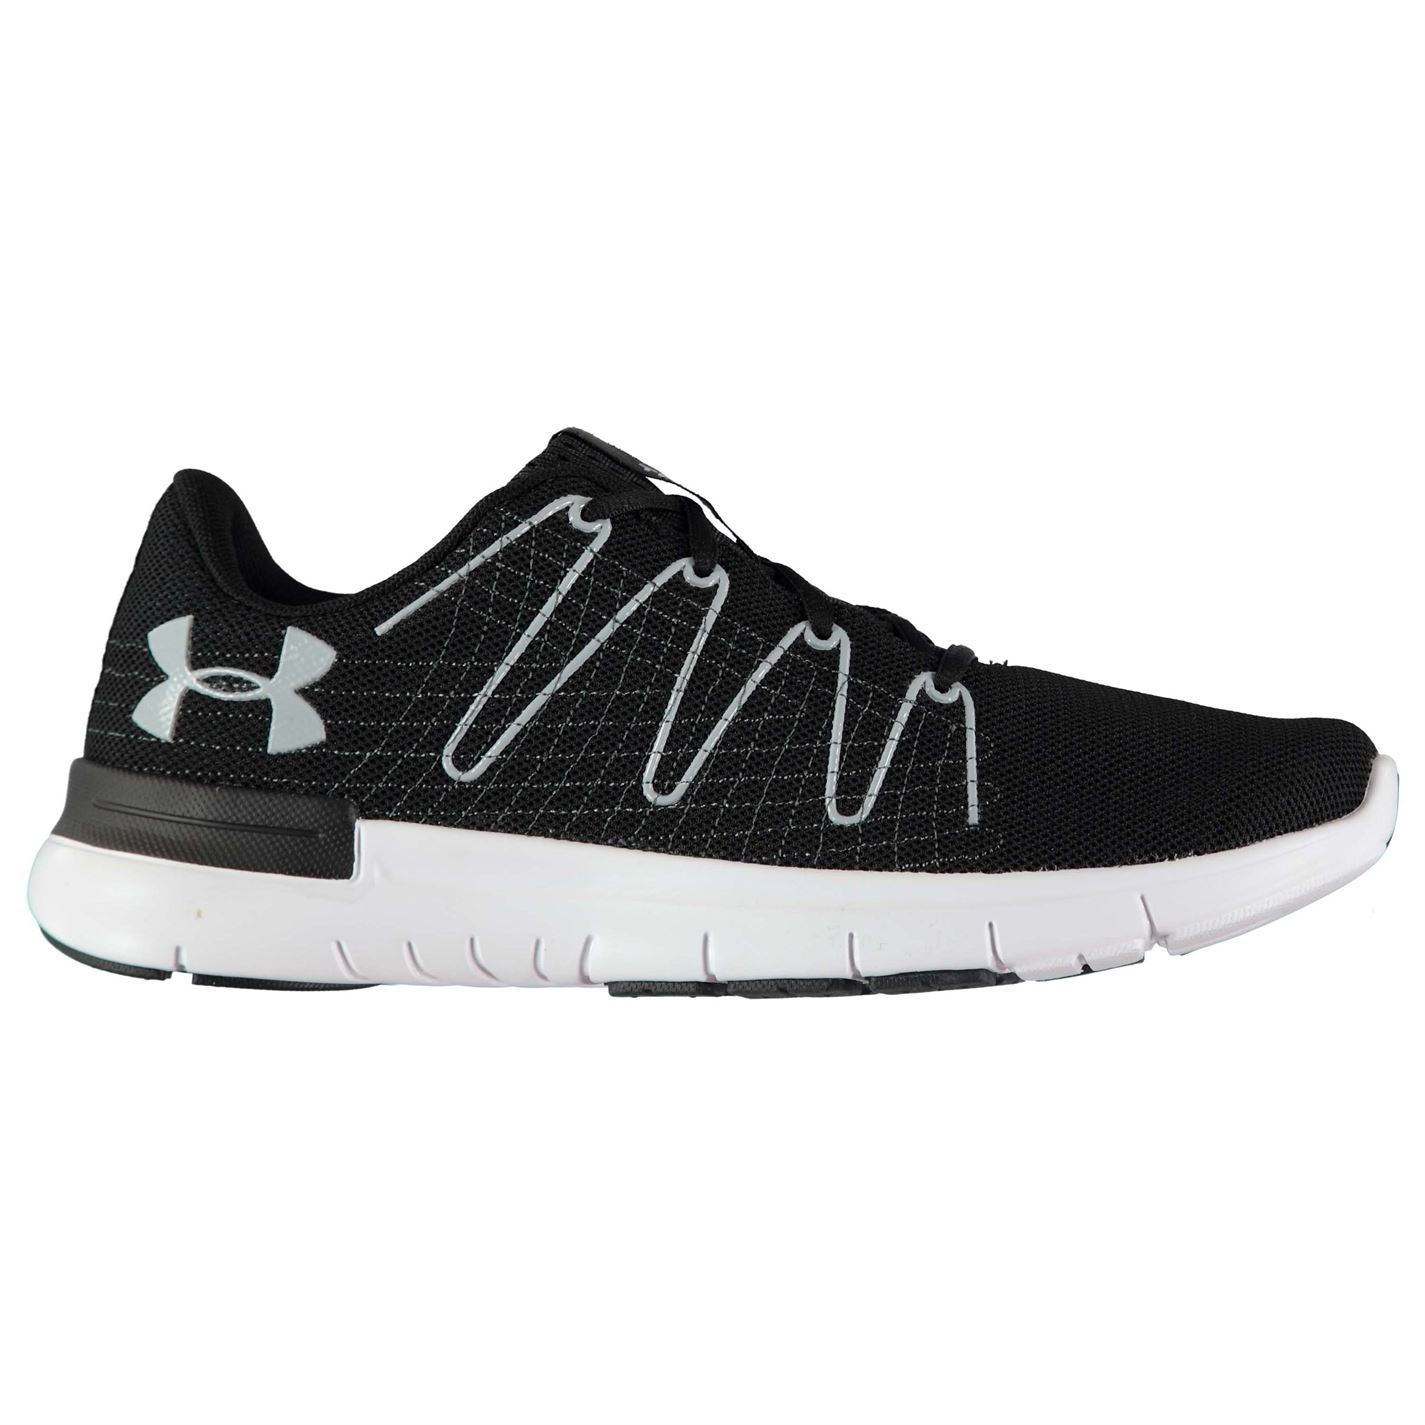 d047aacb45f7 ... Under-Armour-Mens-Thrill-3-Running-Shoes-Lace- ...